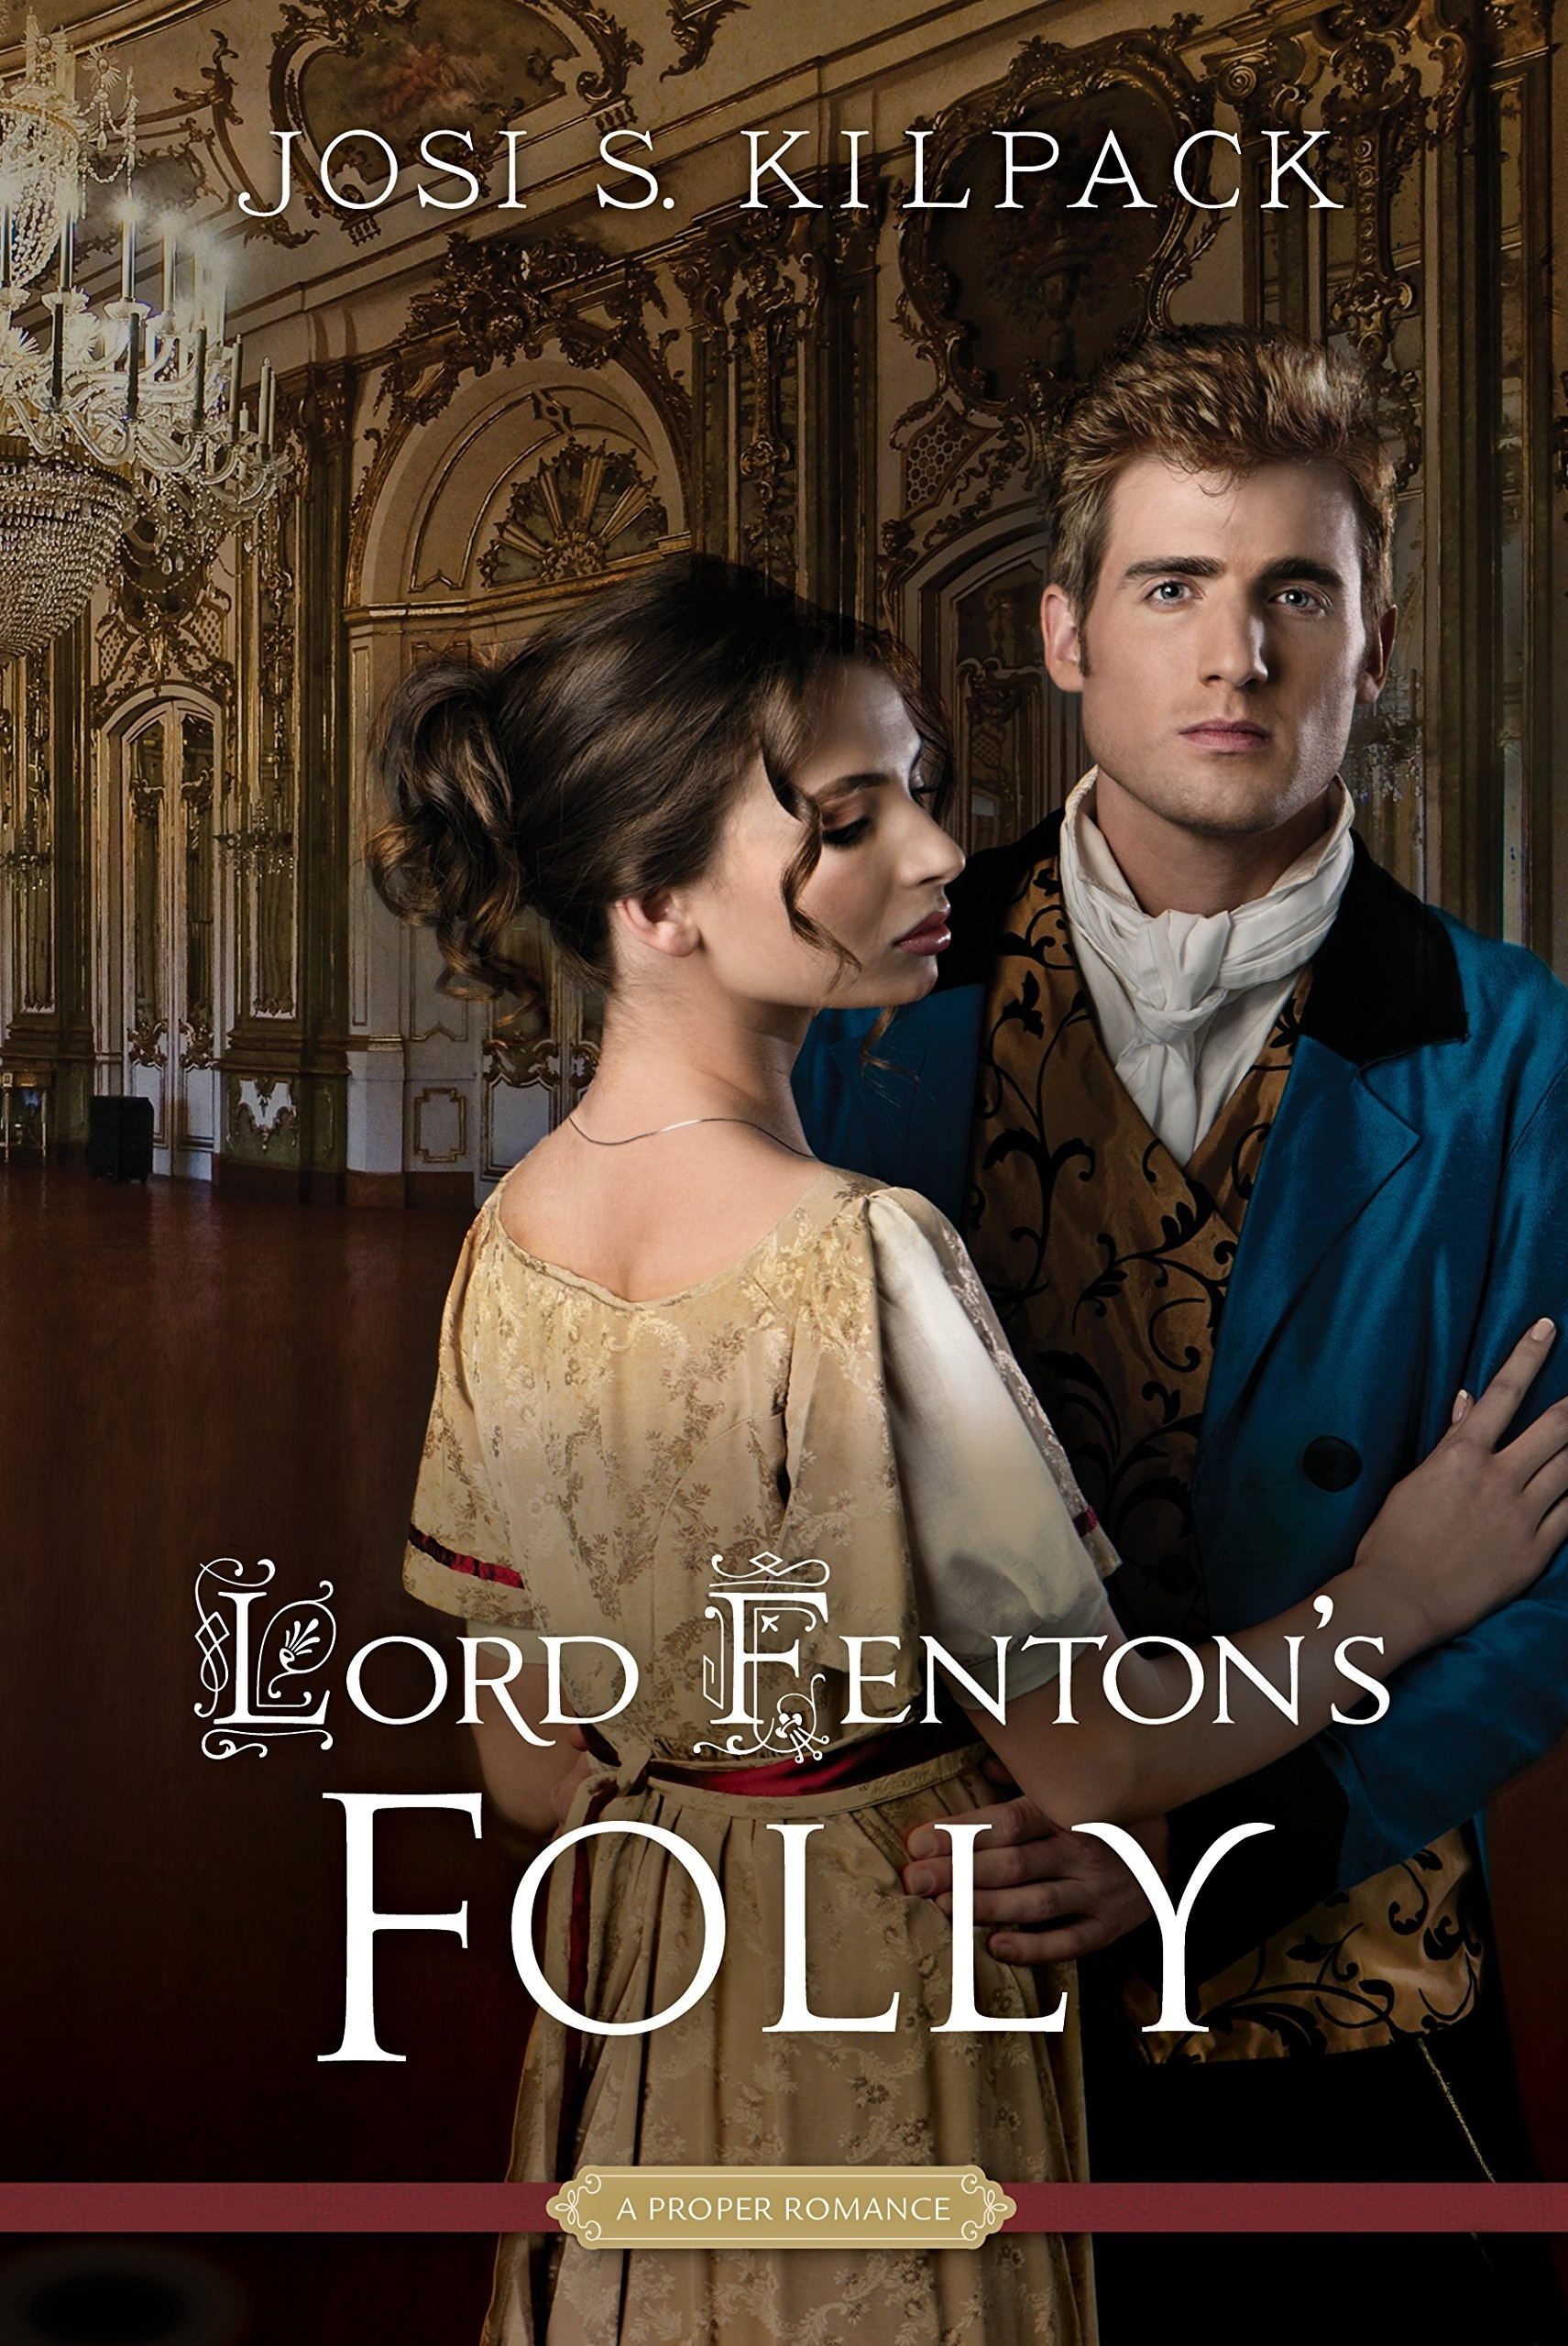 Lord Fenton's Folly, Kilpack, Josi S.